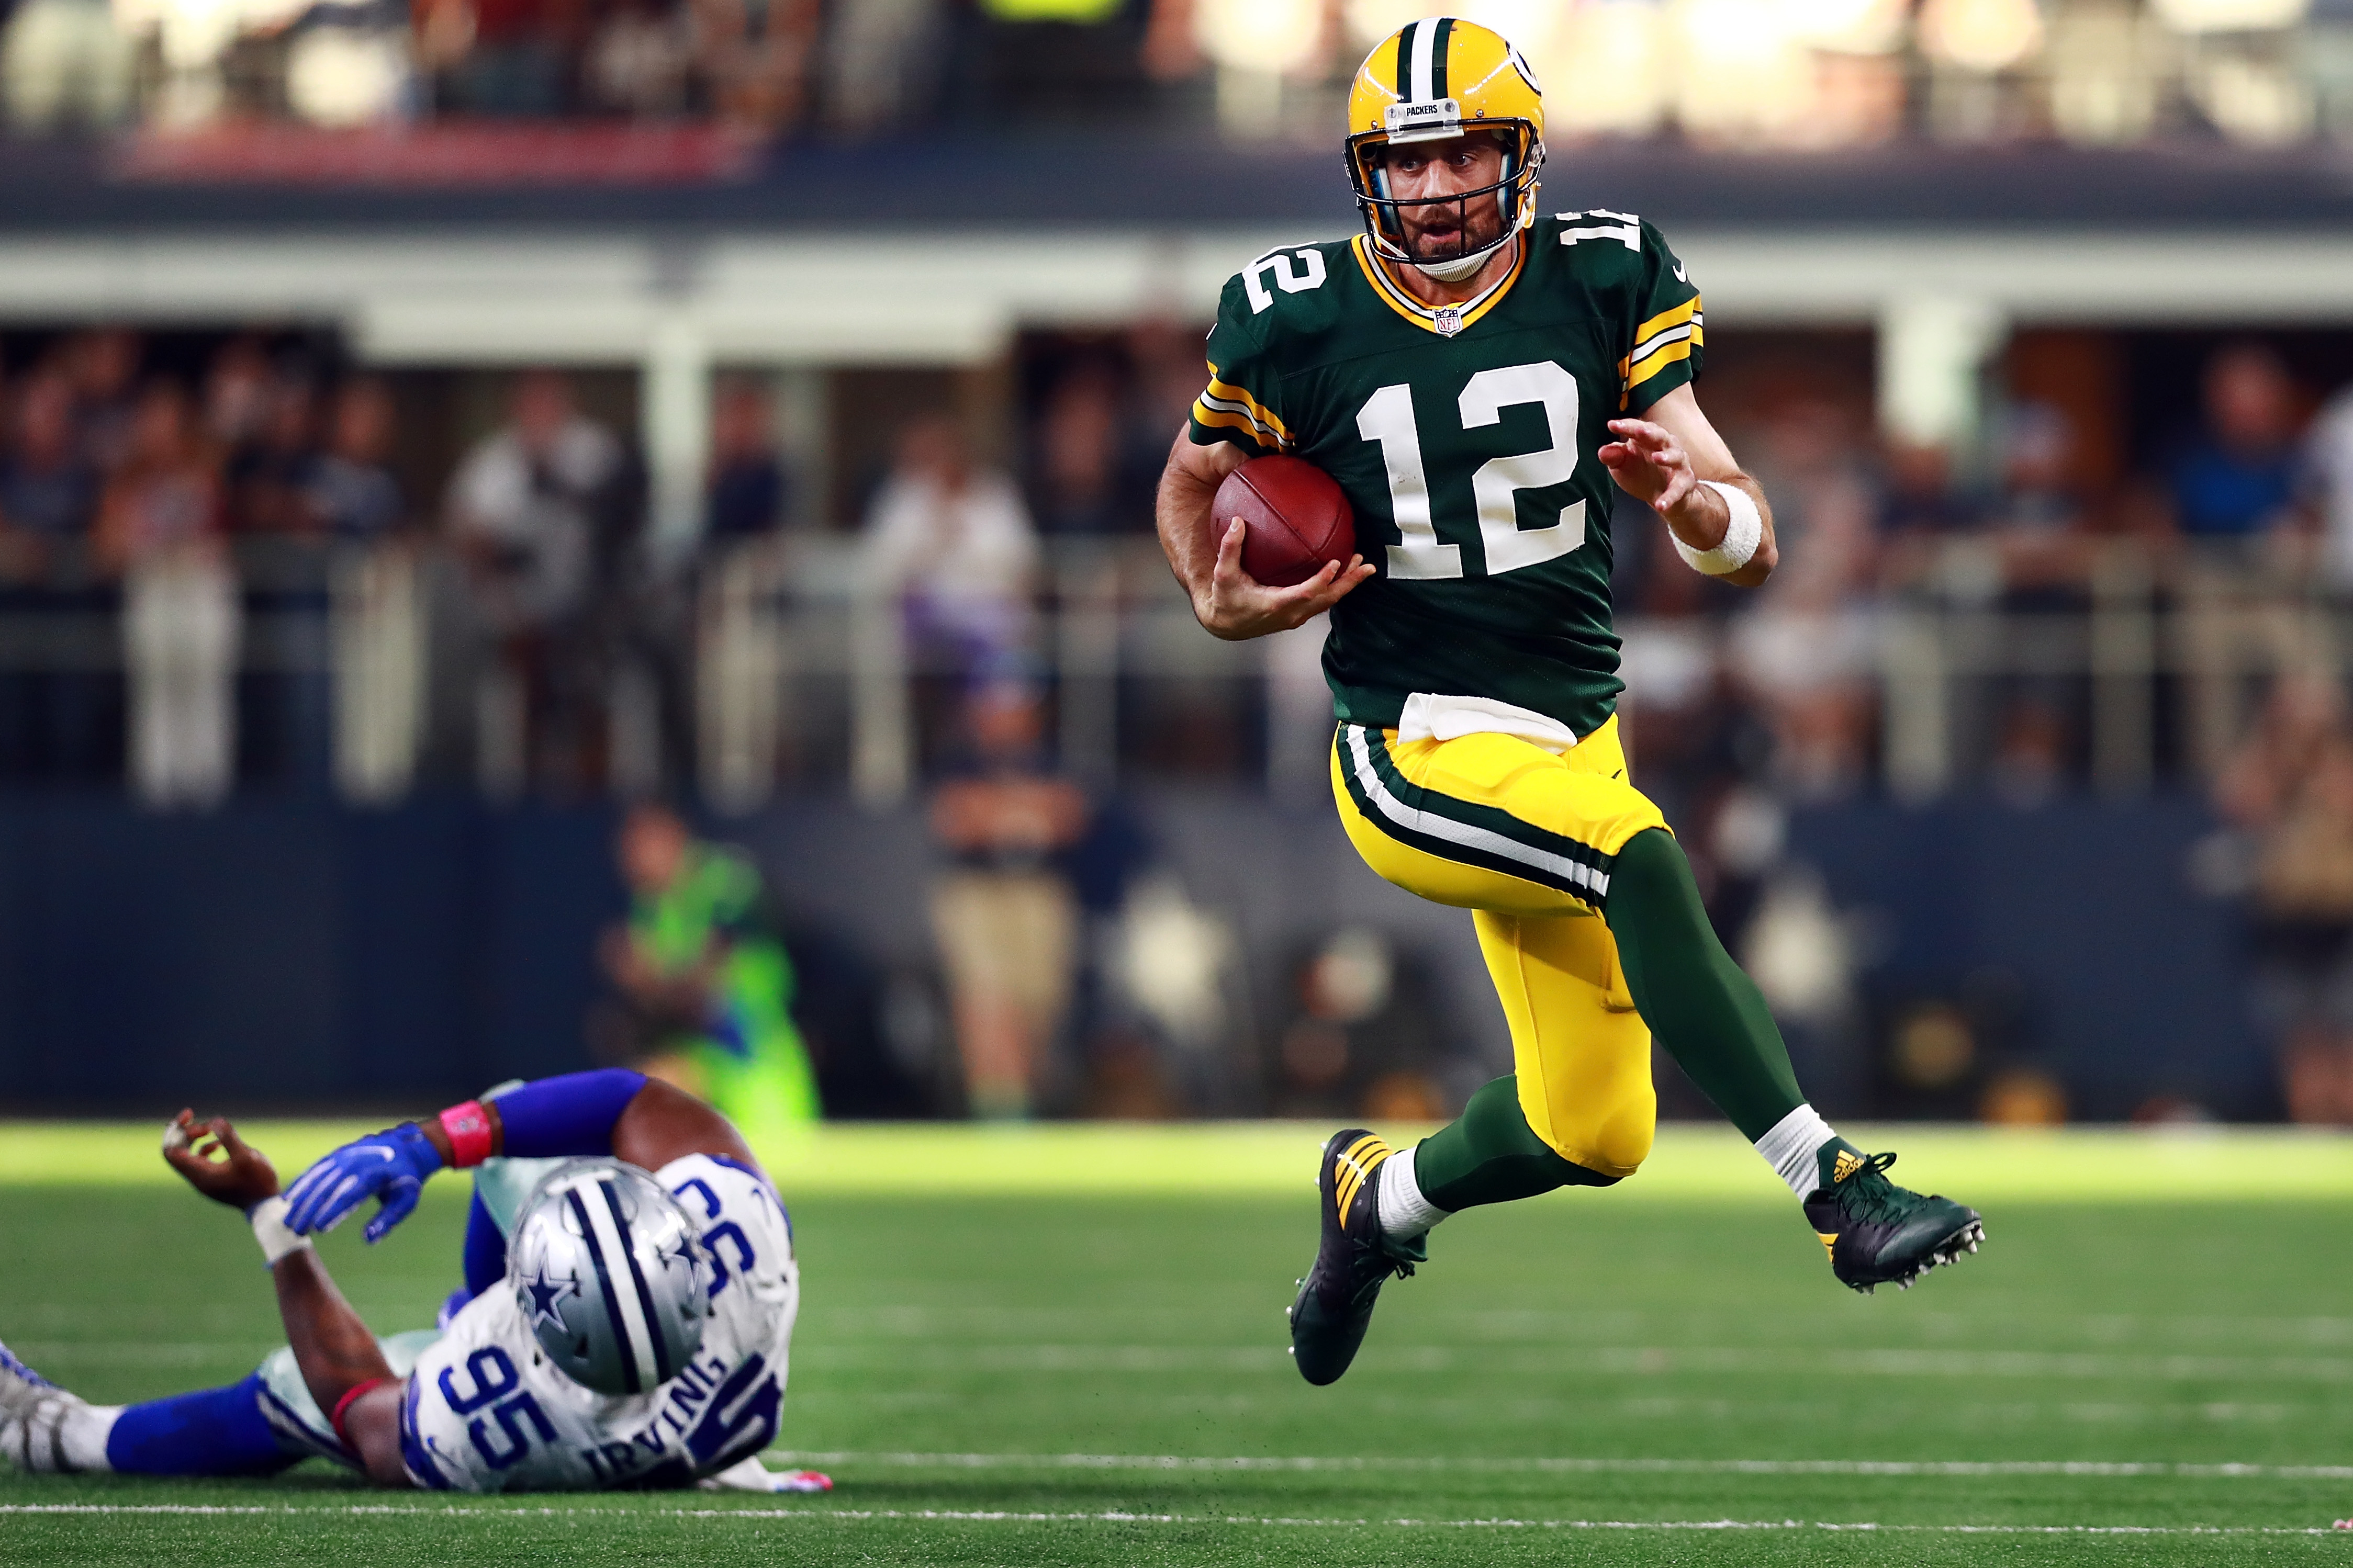 Aaron Rodgers: No surprise he's Offensive Player of the Week